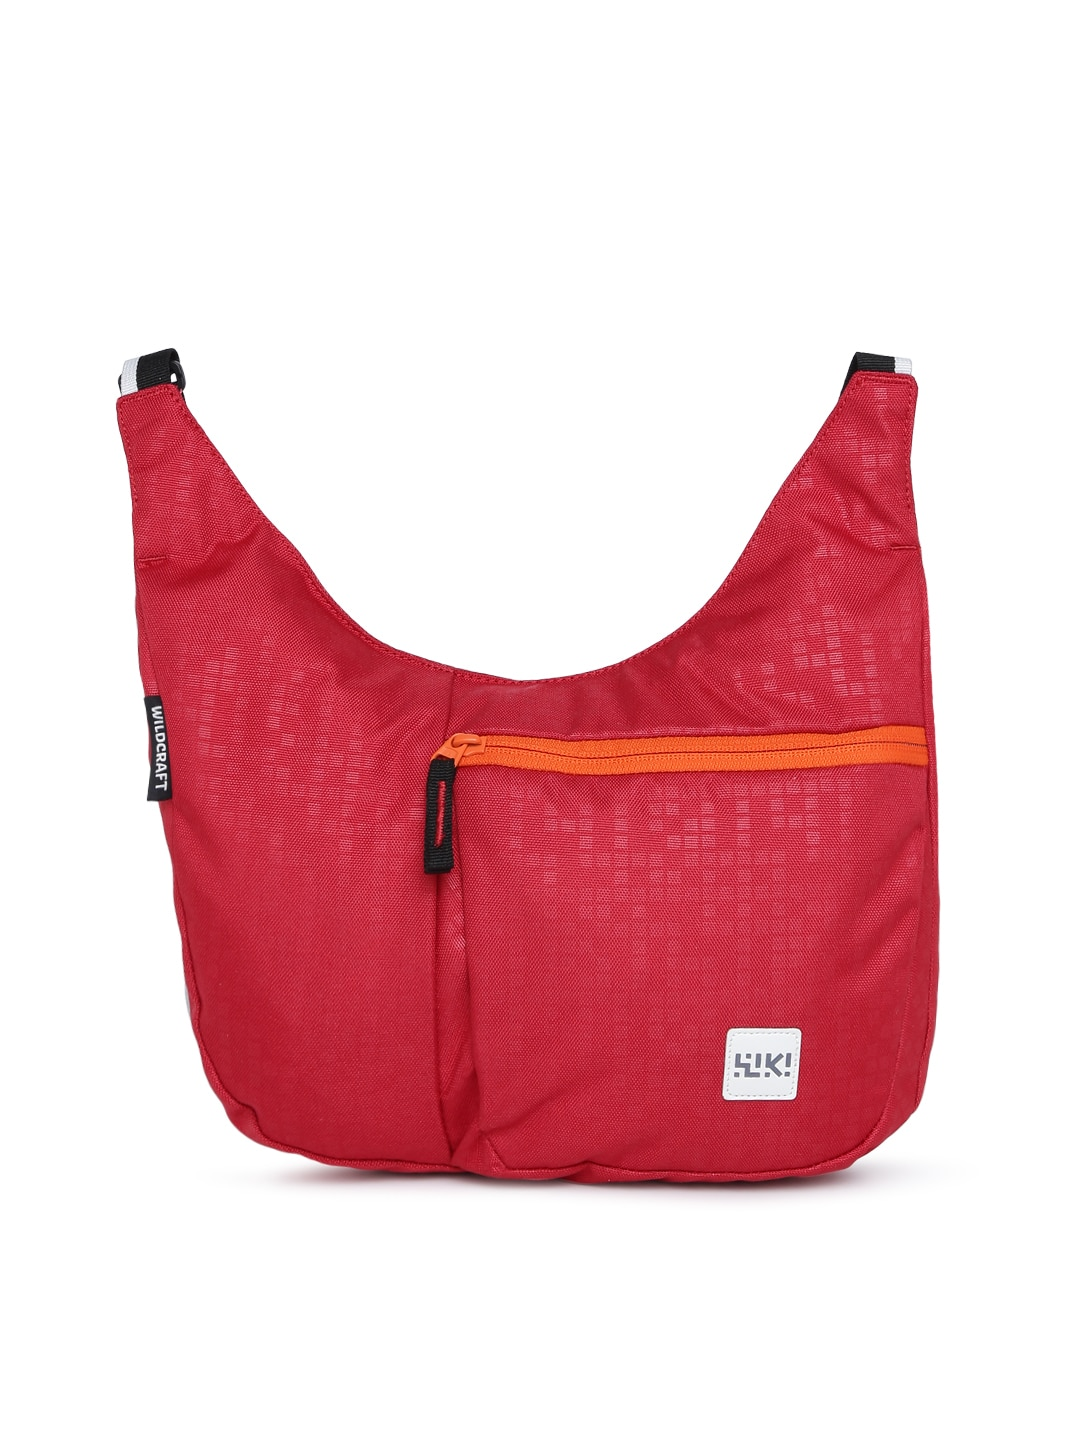 dc019908af3 Wildcraft Sling - Buy Wildcraft Sling online in India